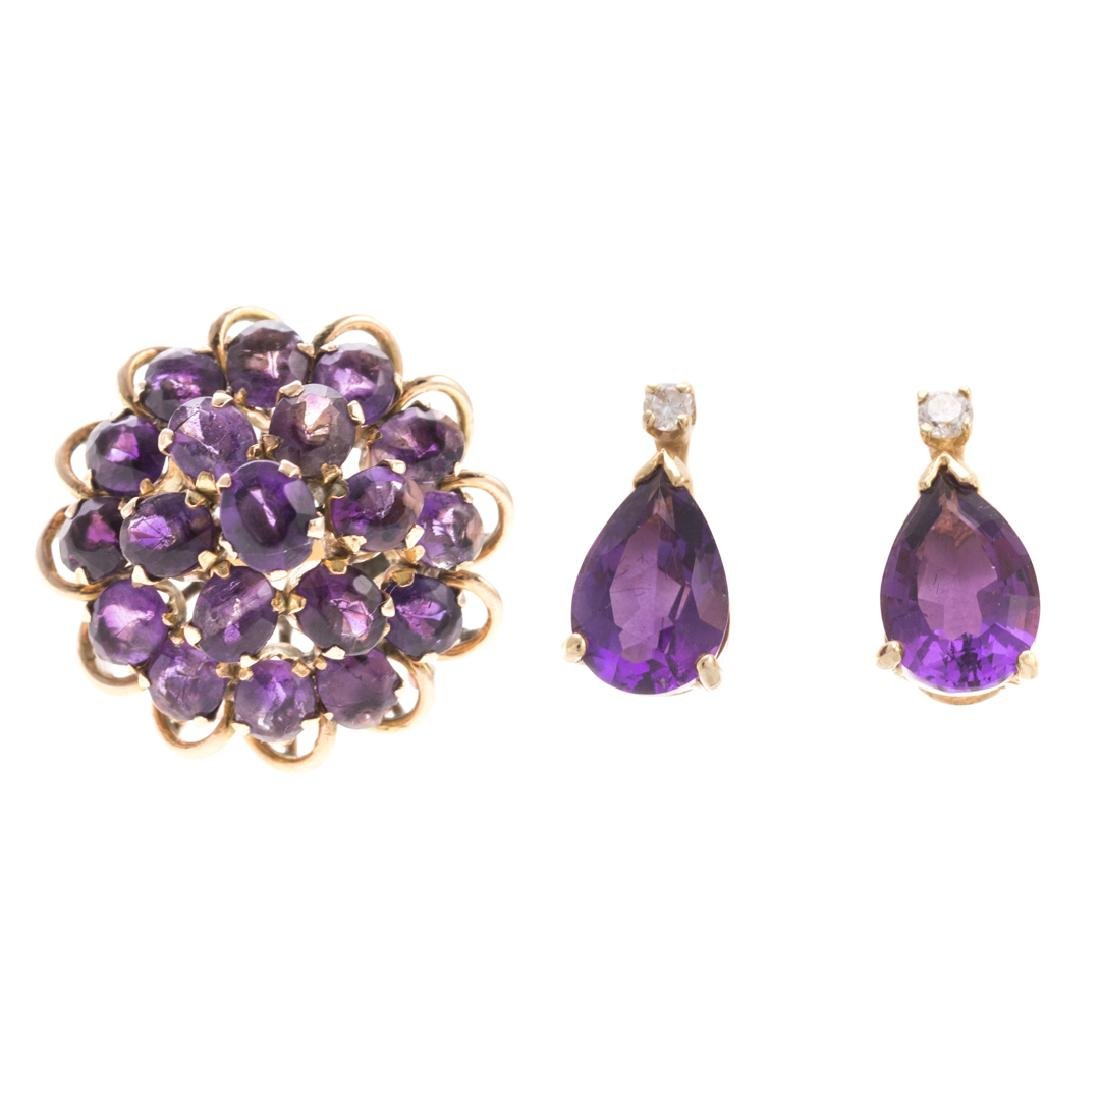 A Lady's Amethyst Ring & Earrings